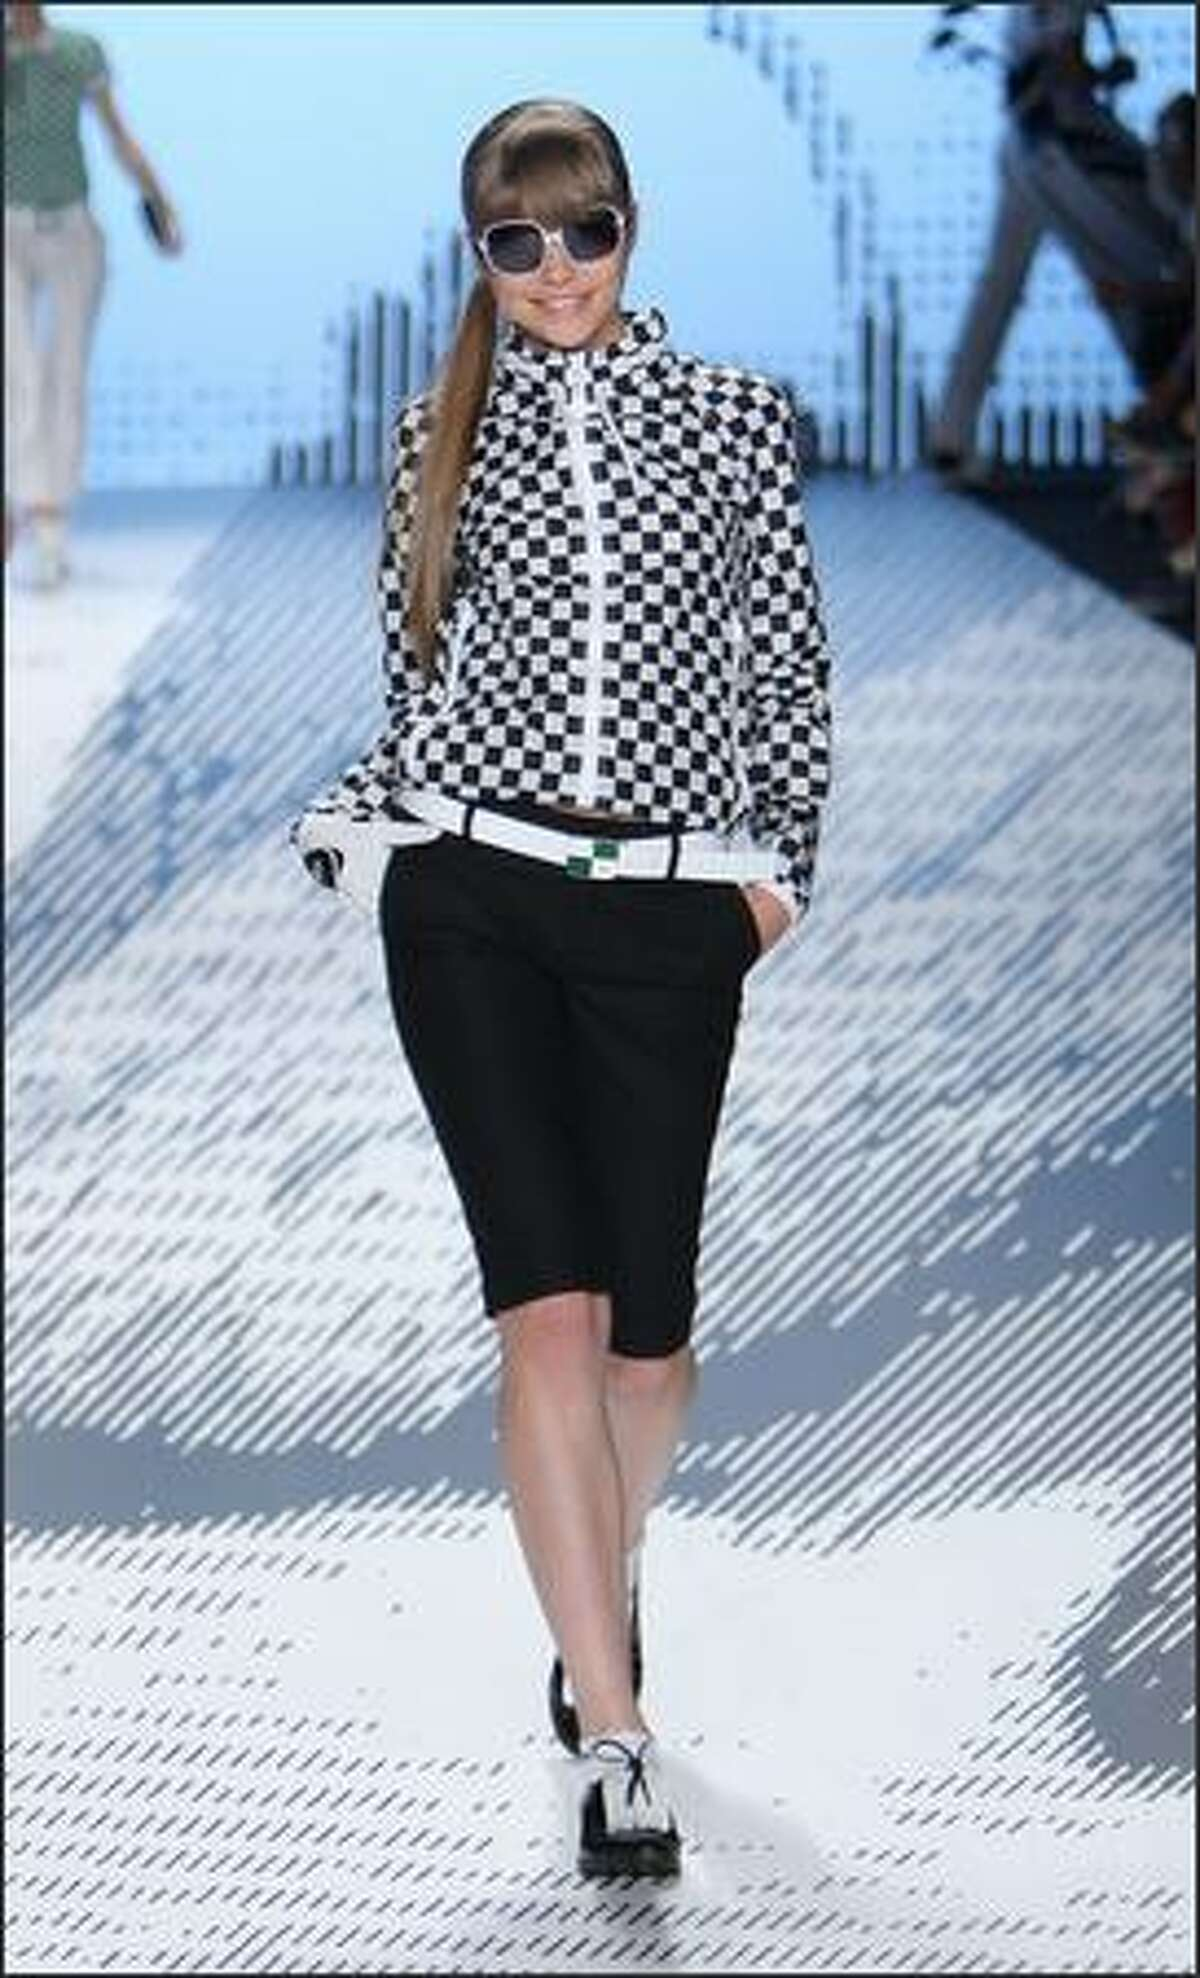 A model walks the runway during the Lacoste show.